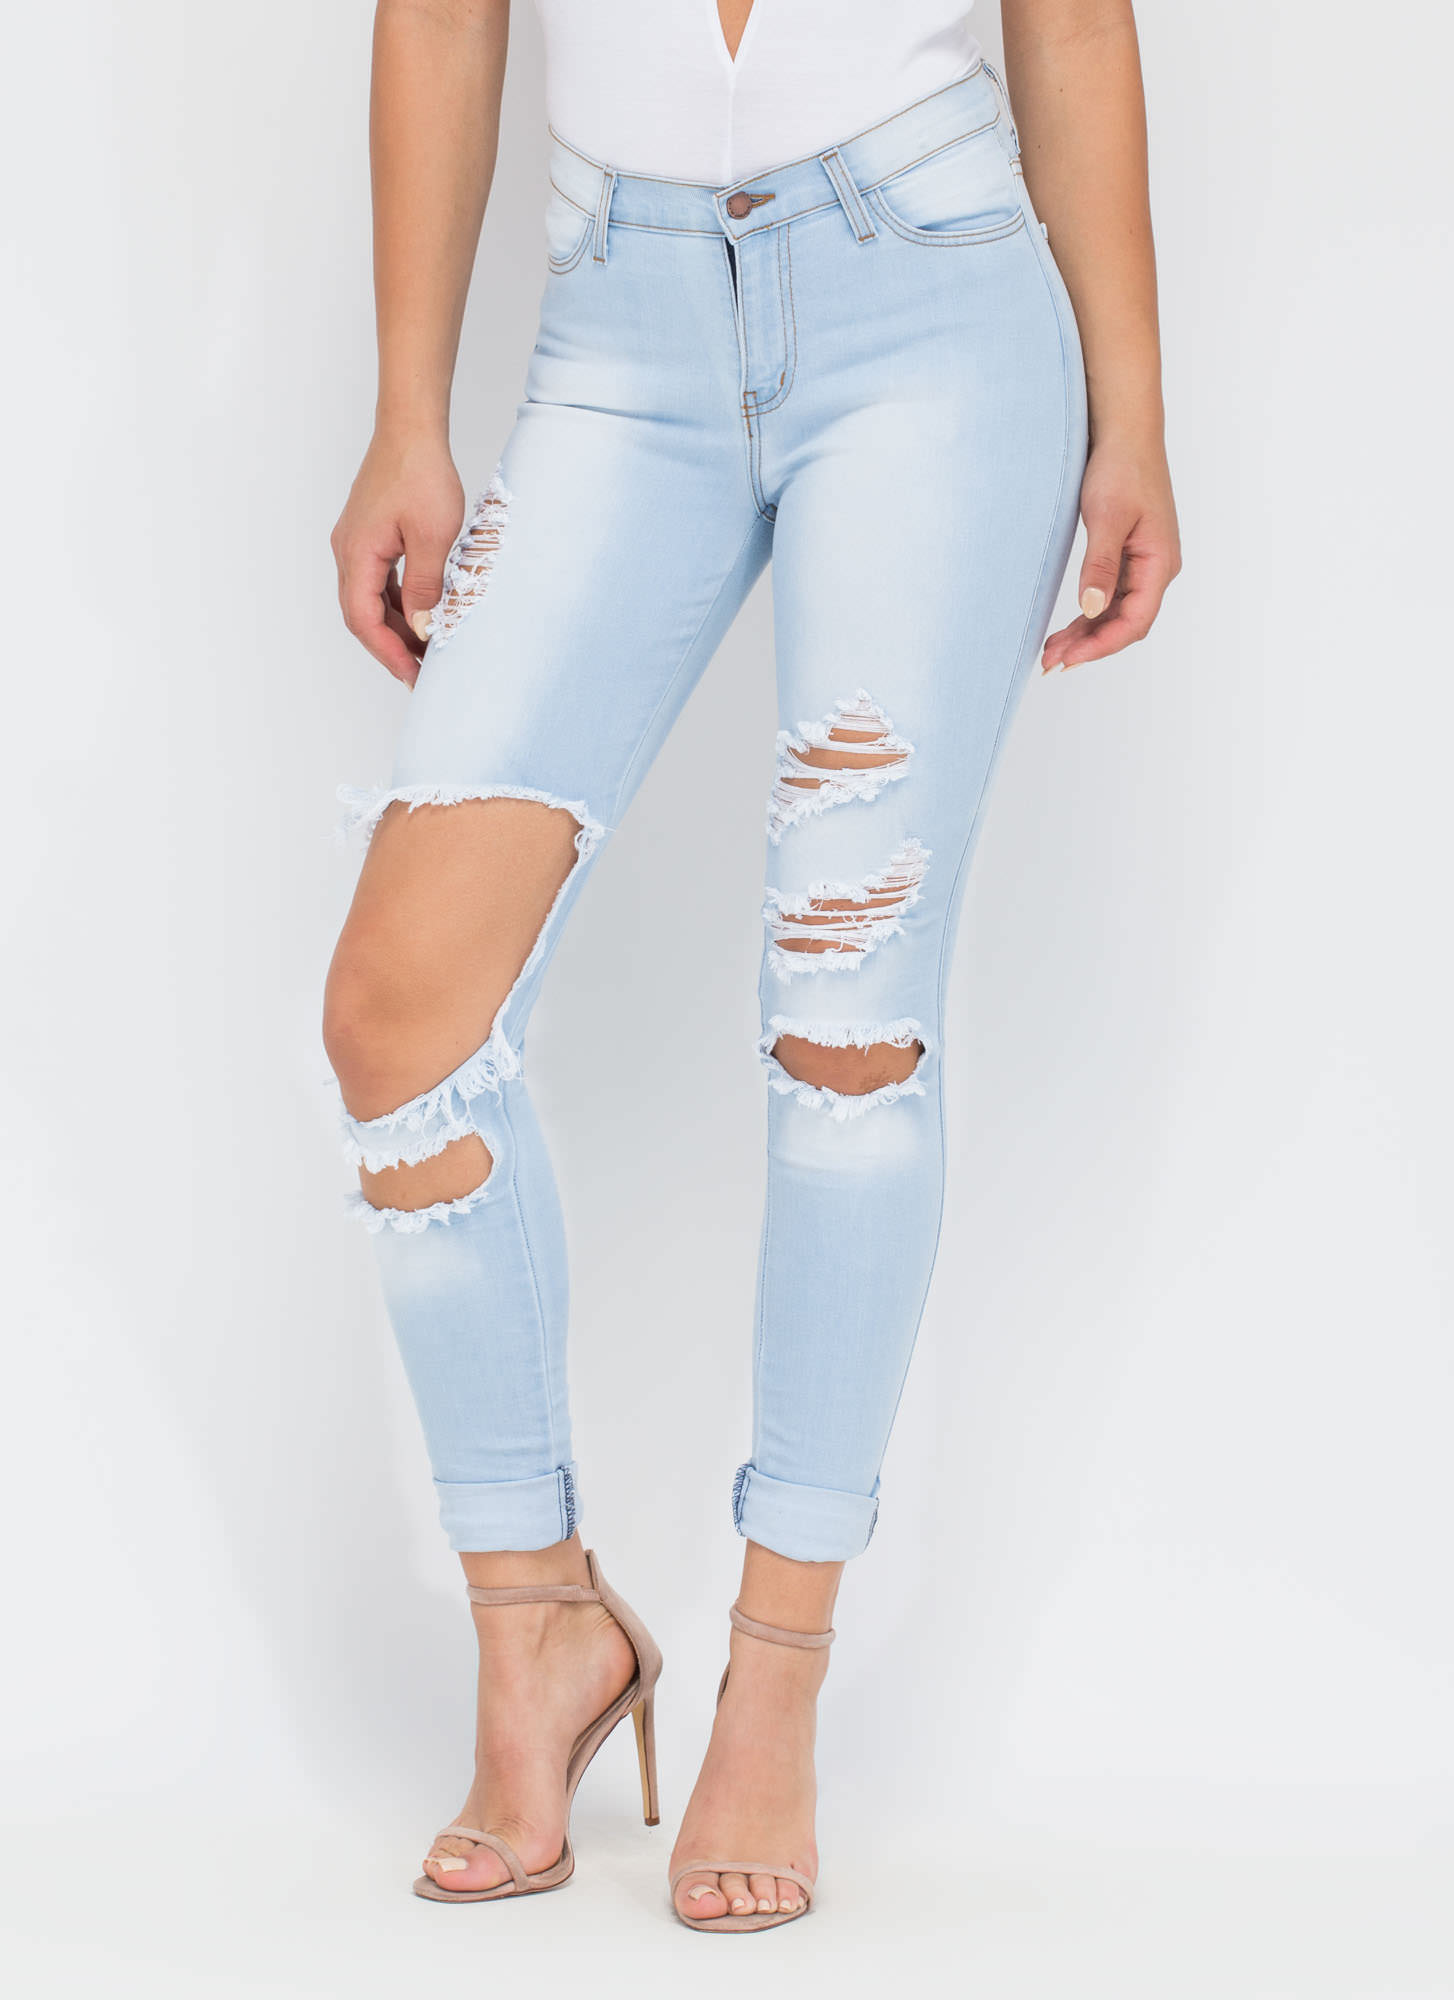 Deconstructed Stone Washed Jeans LTBLUE